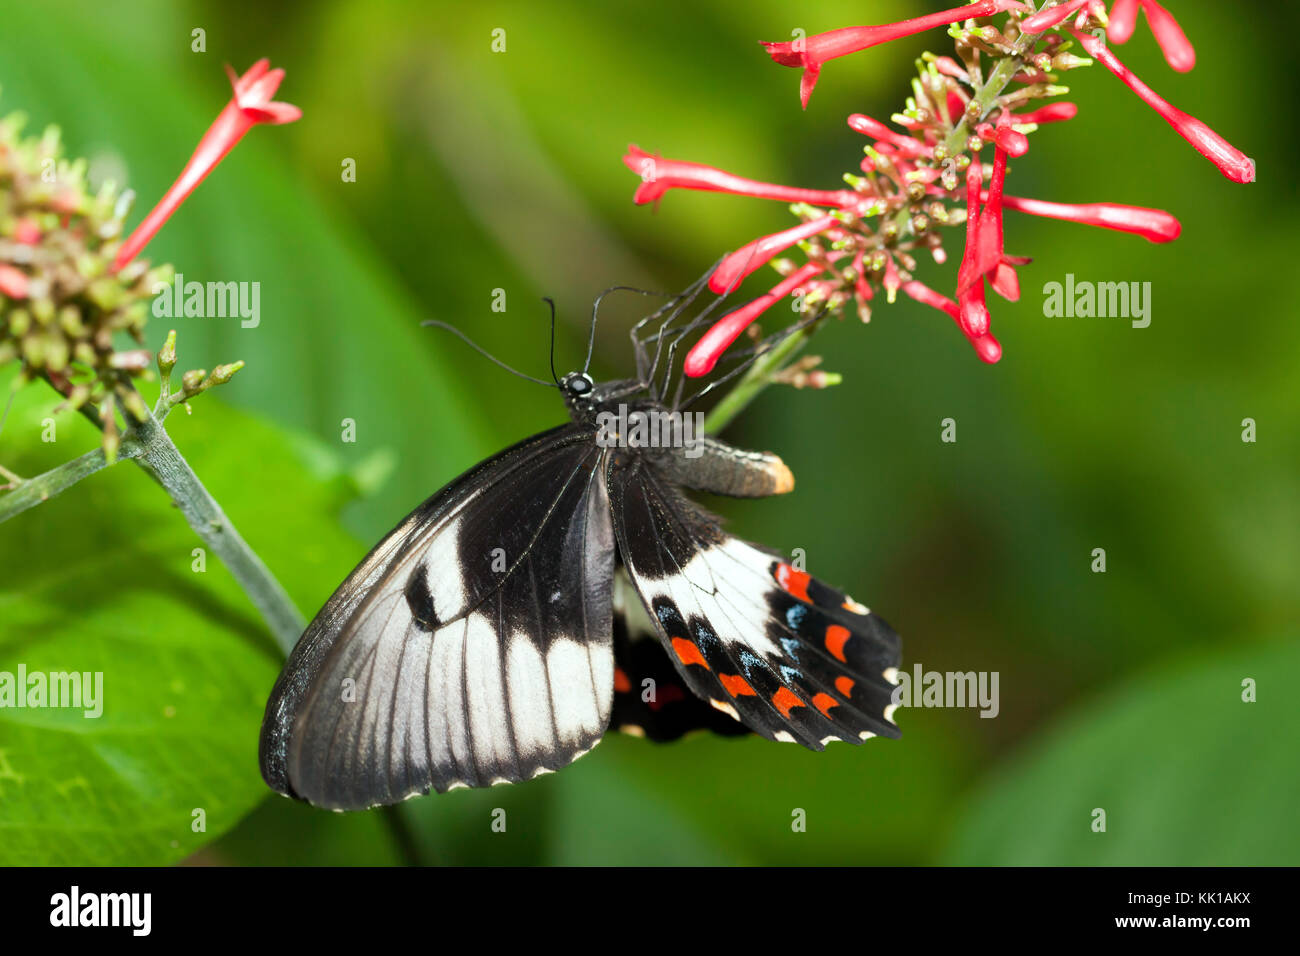 Orchard swallowtail butterfly at the Australian Butterfly Sanctuary, Kuranda. - Stock Image